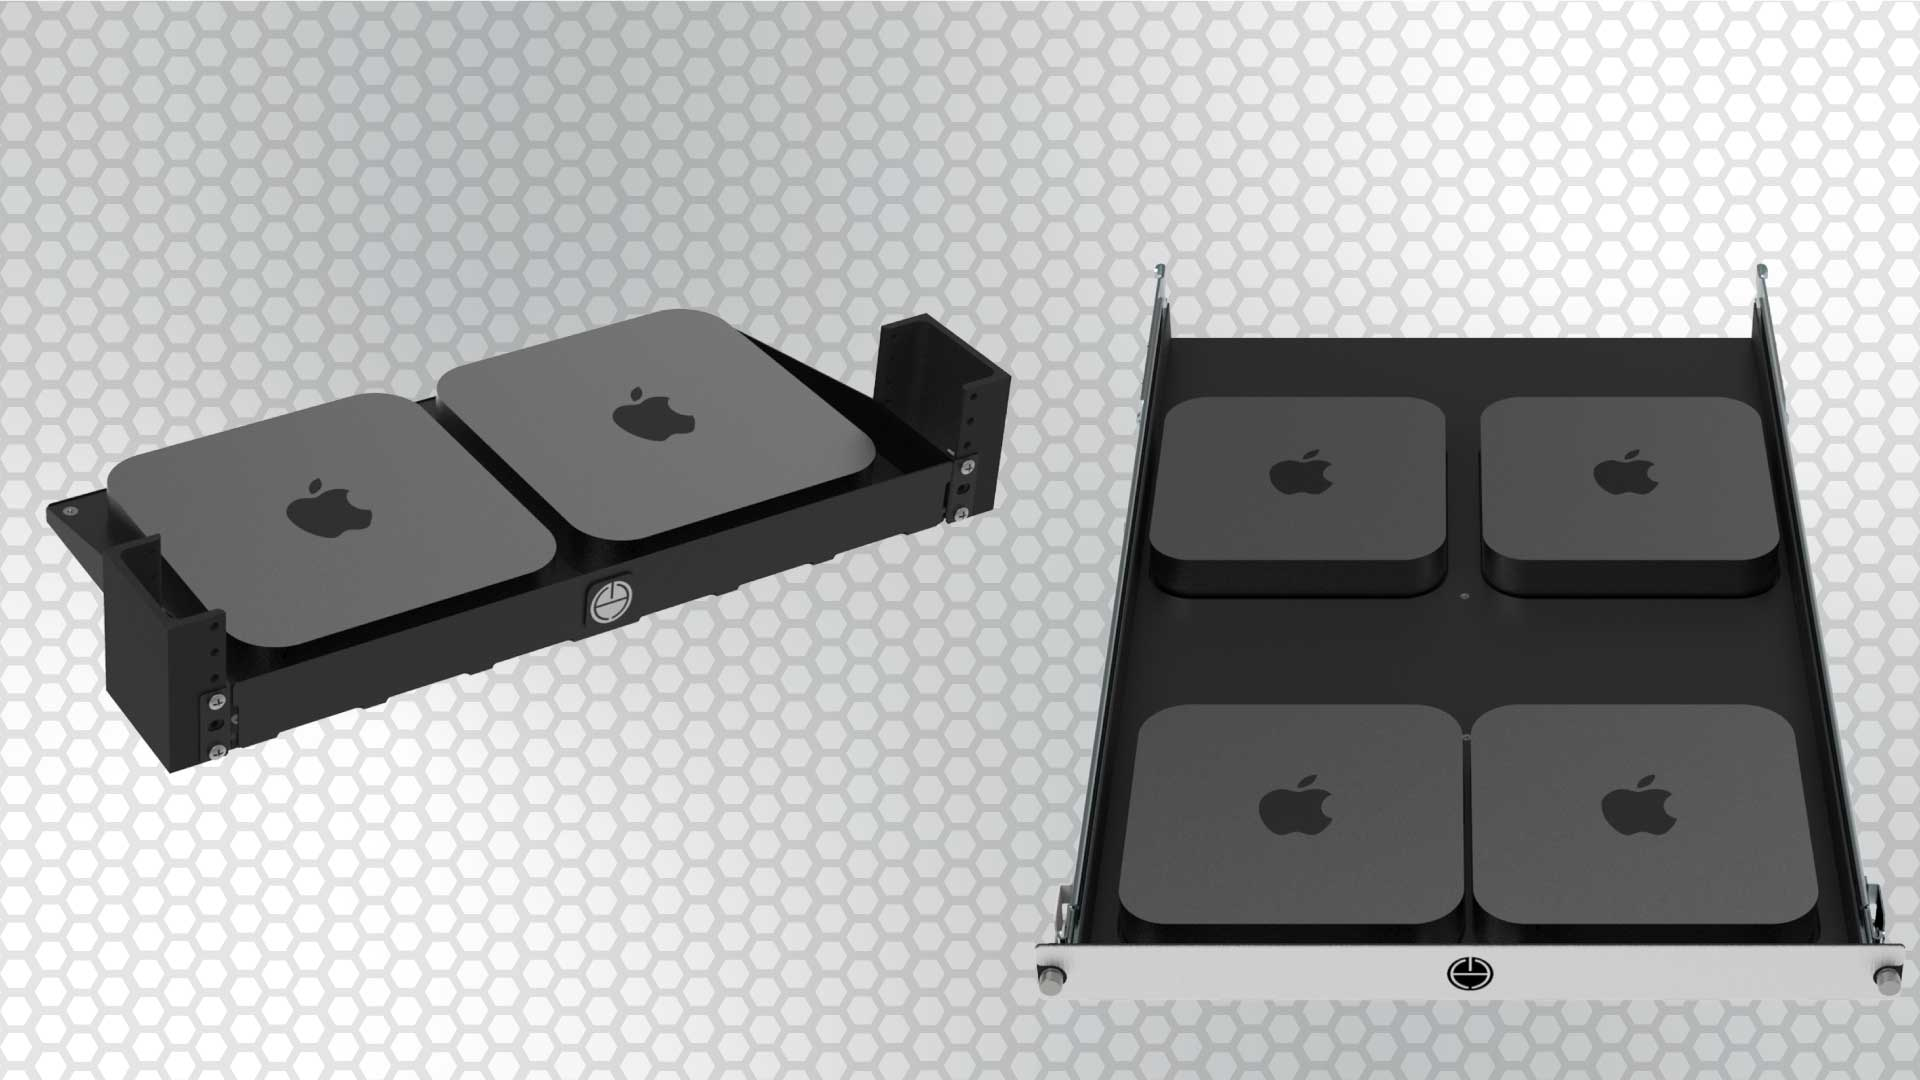 How to rack mount multiple Mac Minis